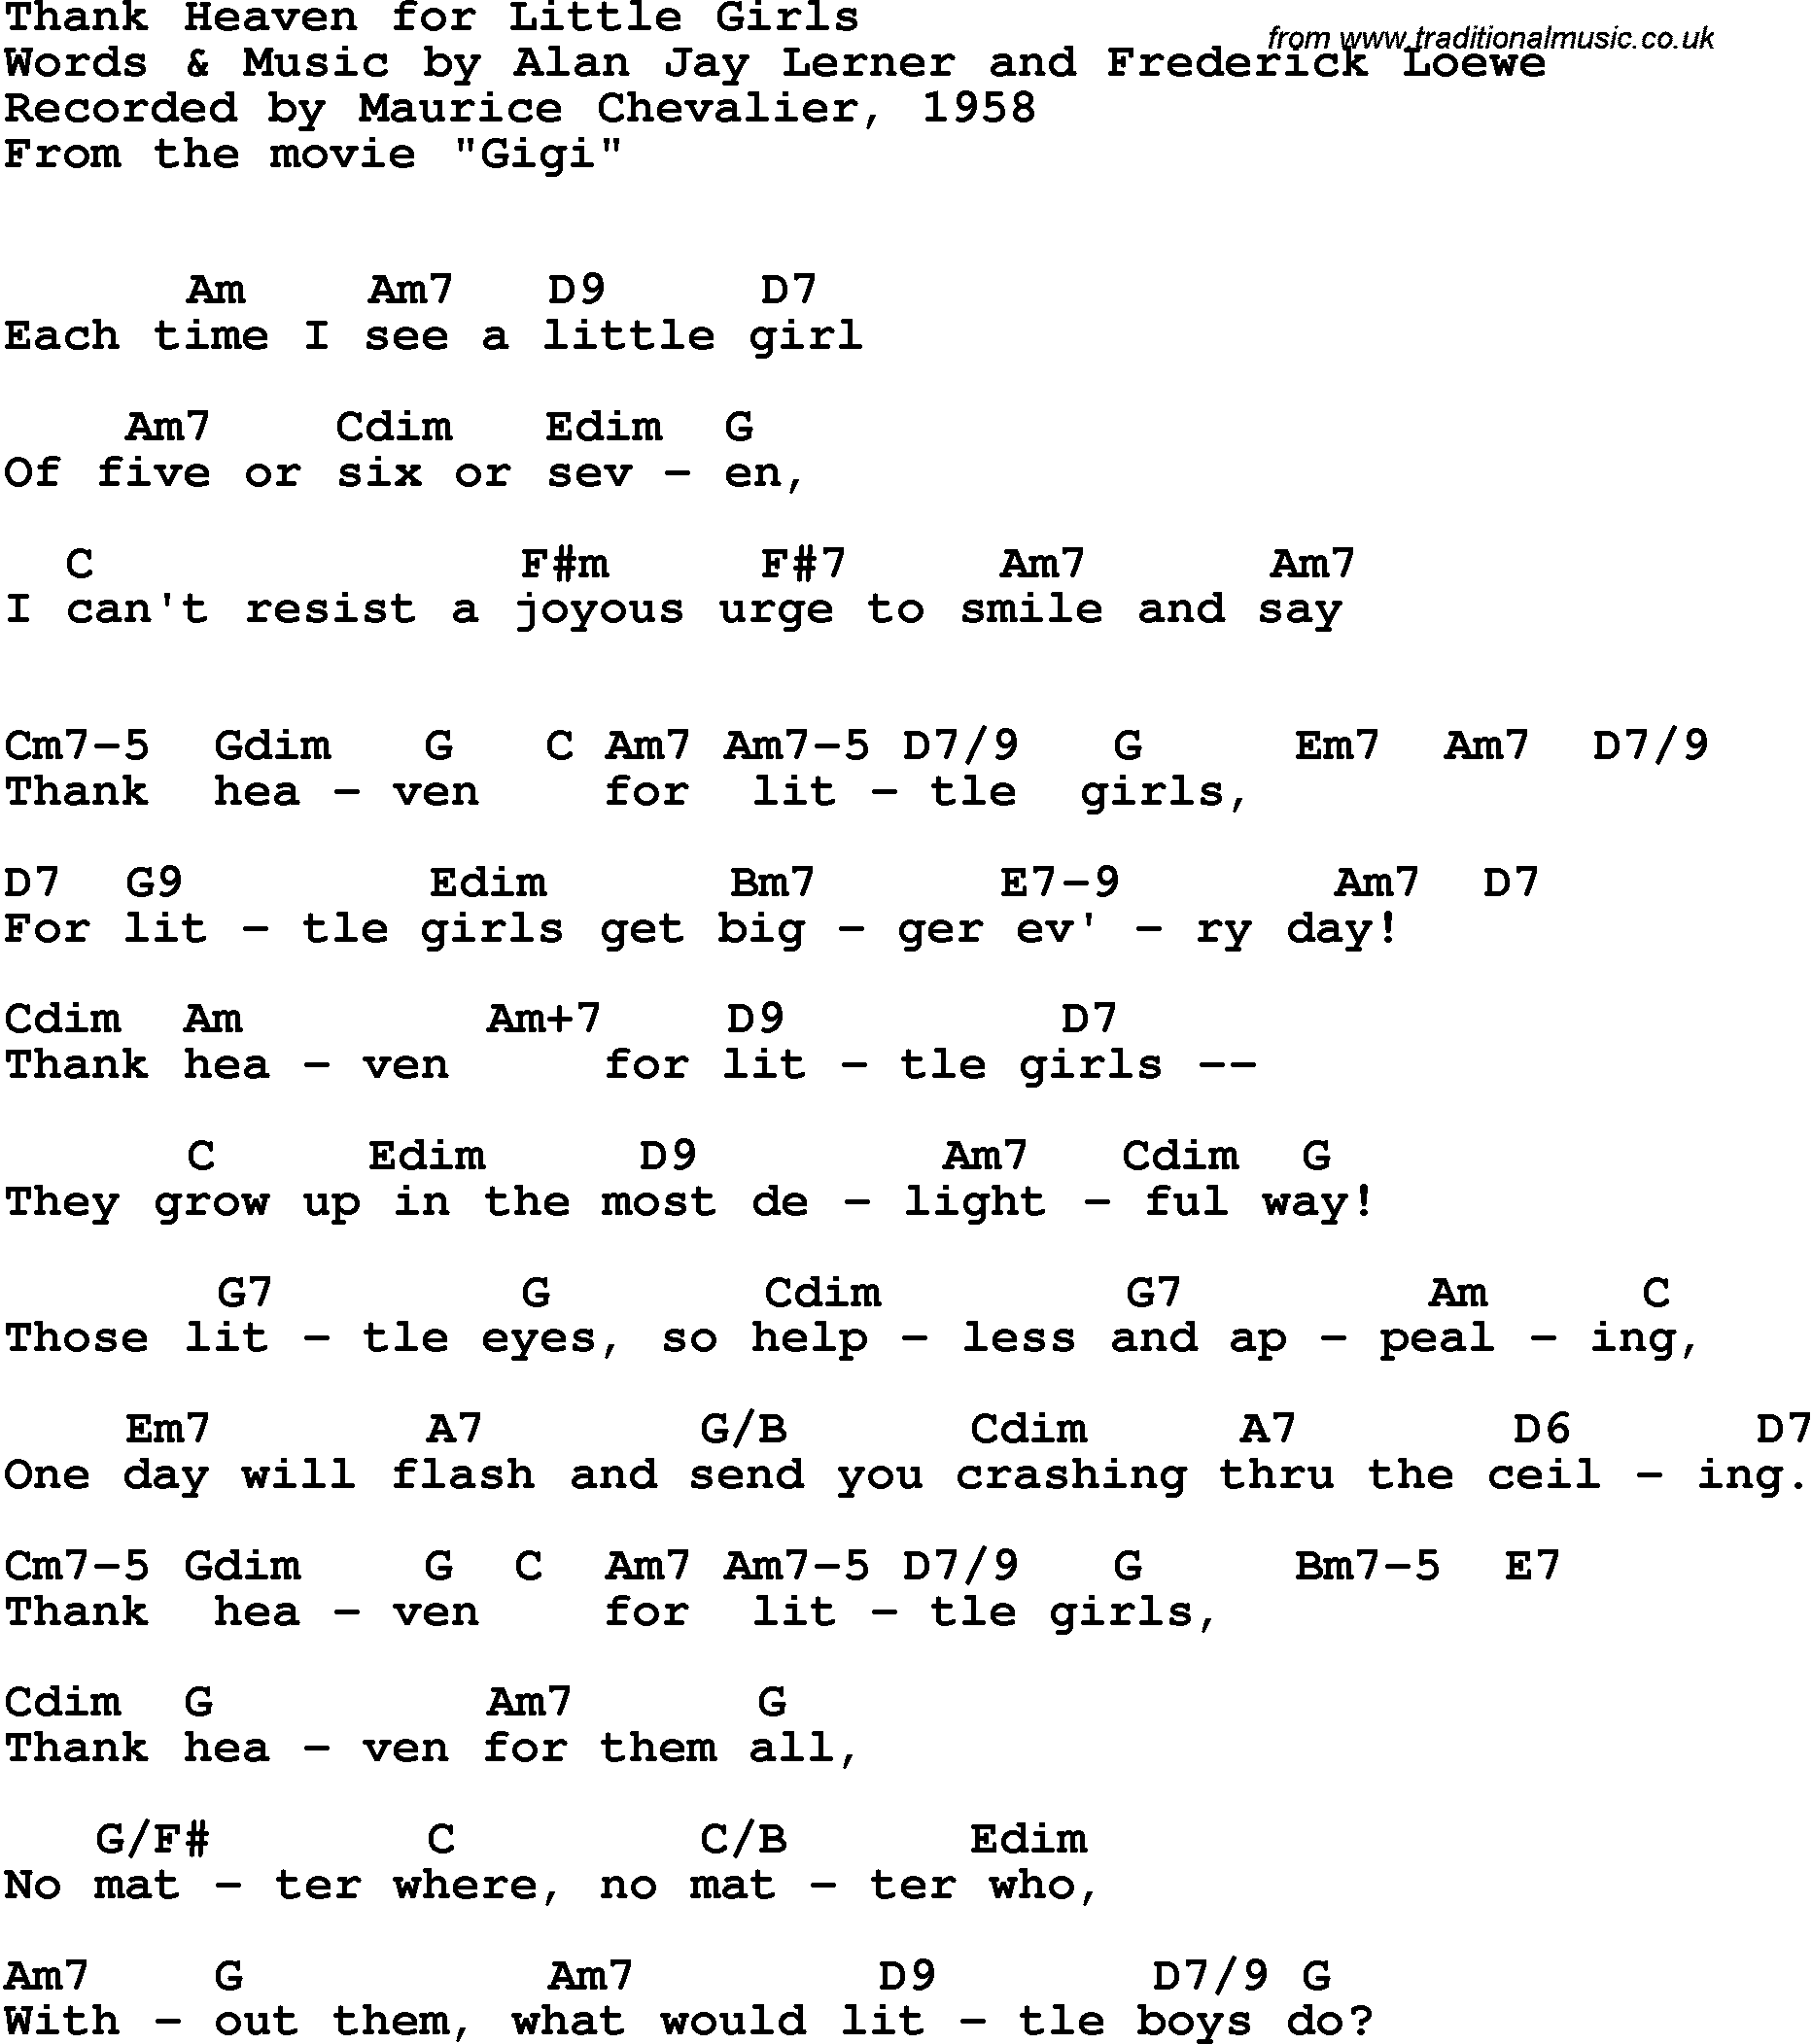 Song Lyrics With Guitar Chords For Thank Heaven For Little Girls